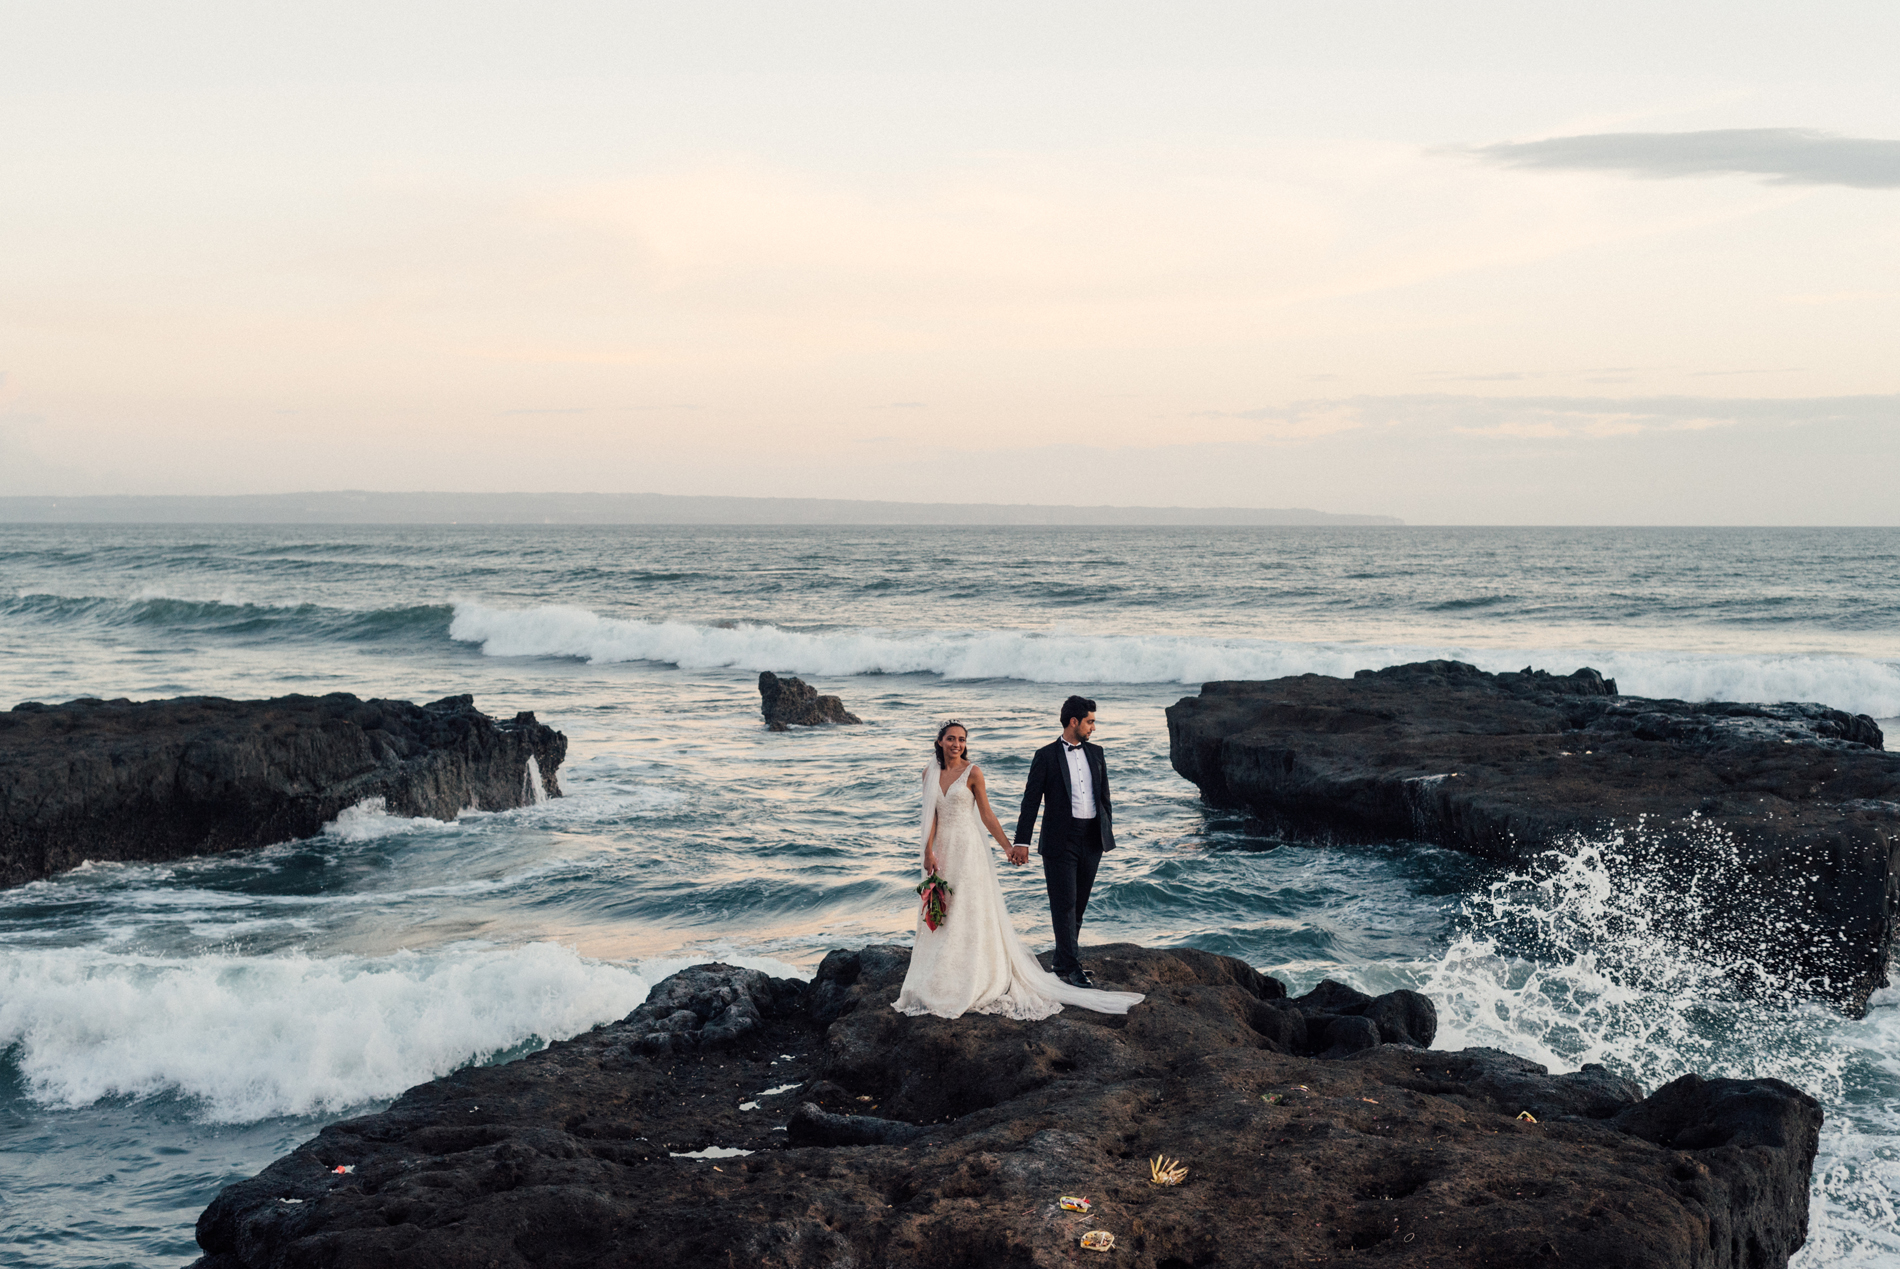 ali and duygu adventurous elopement in bali